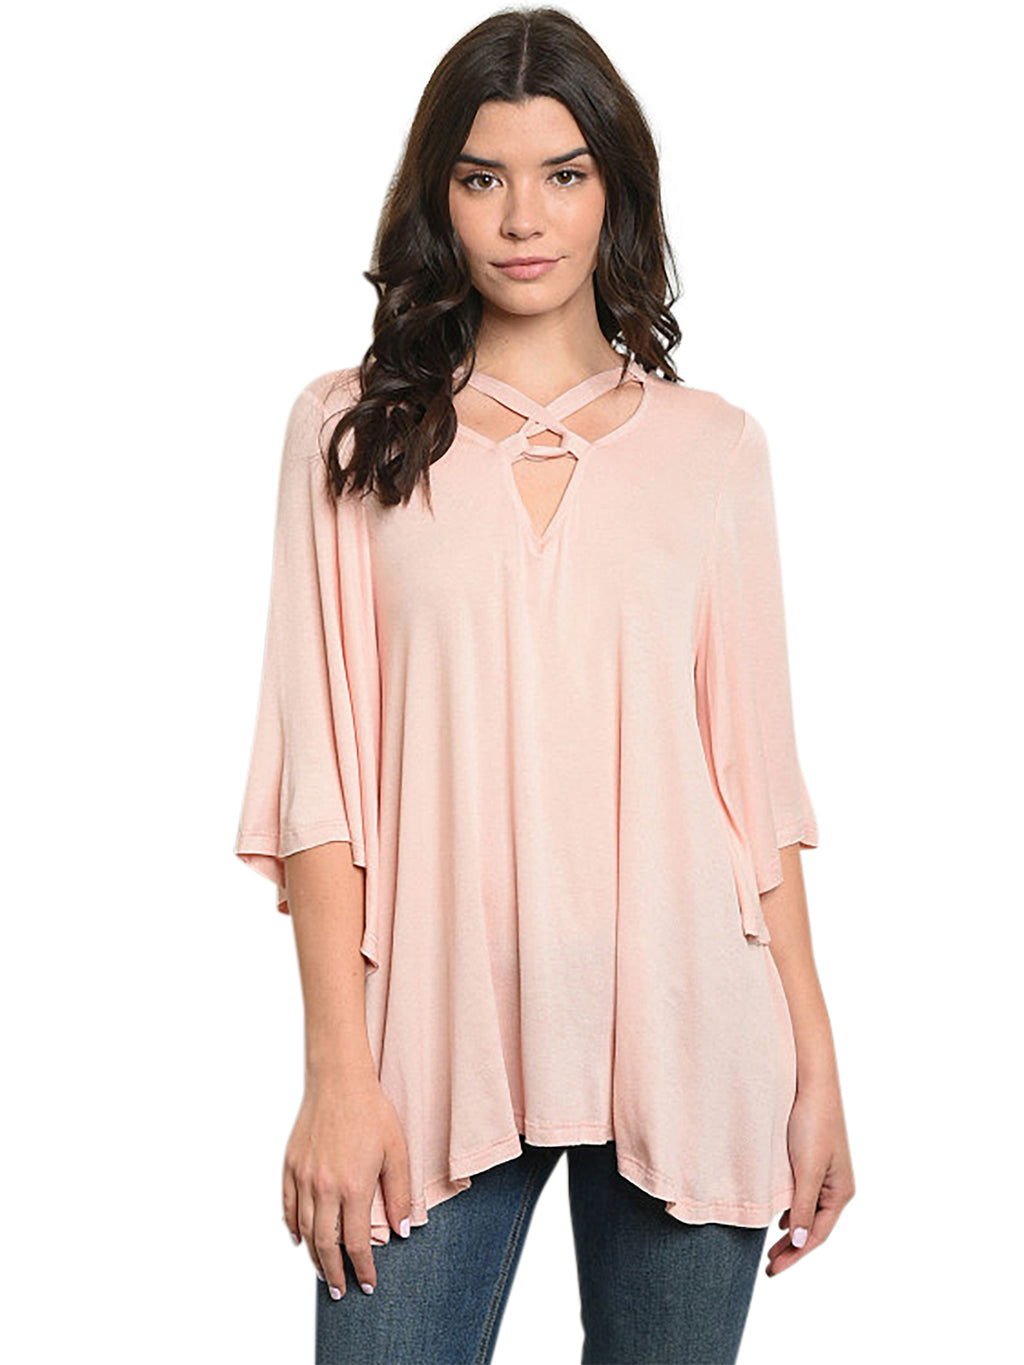 Blush Pink Relaxed Fit Top With Crisscross Tie